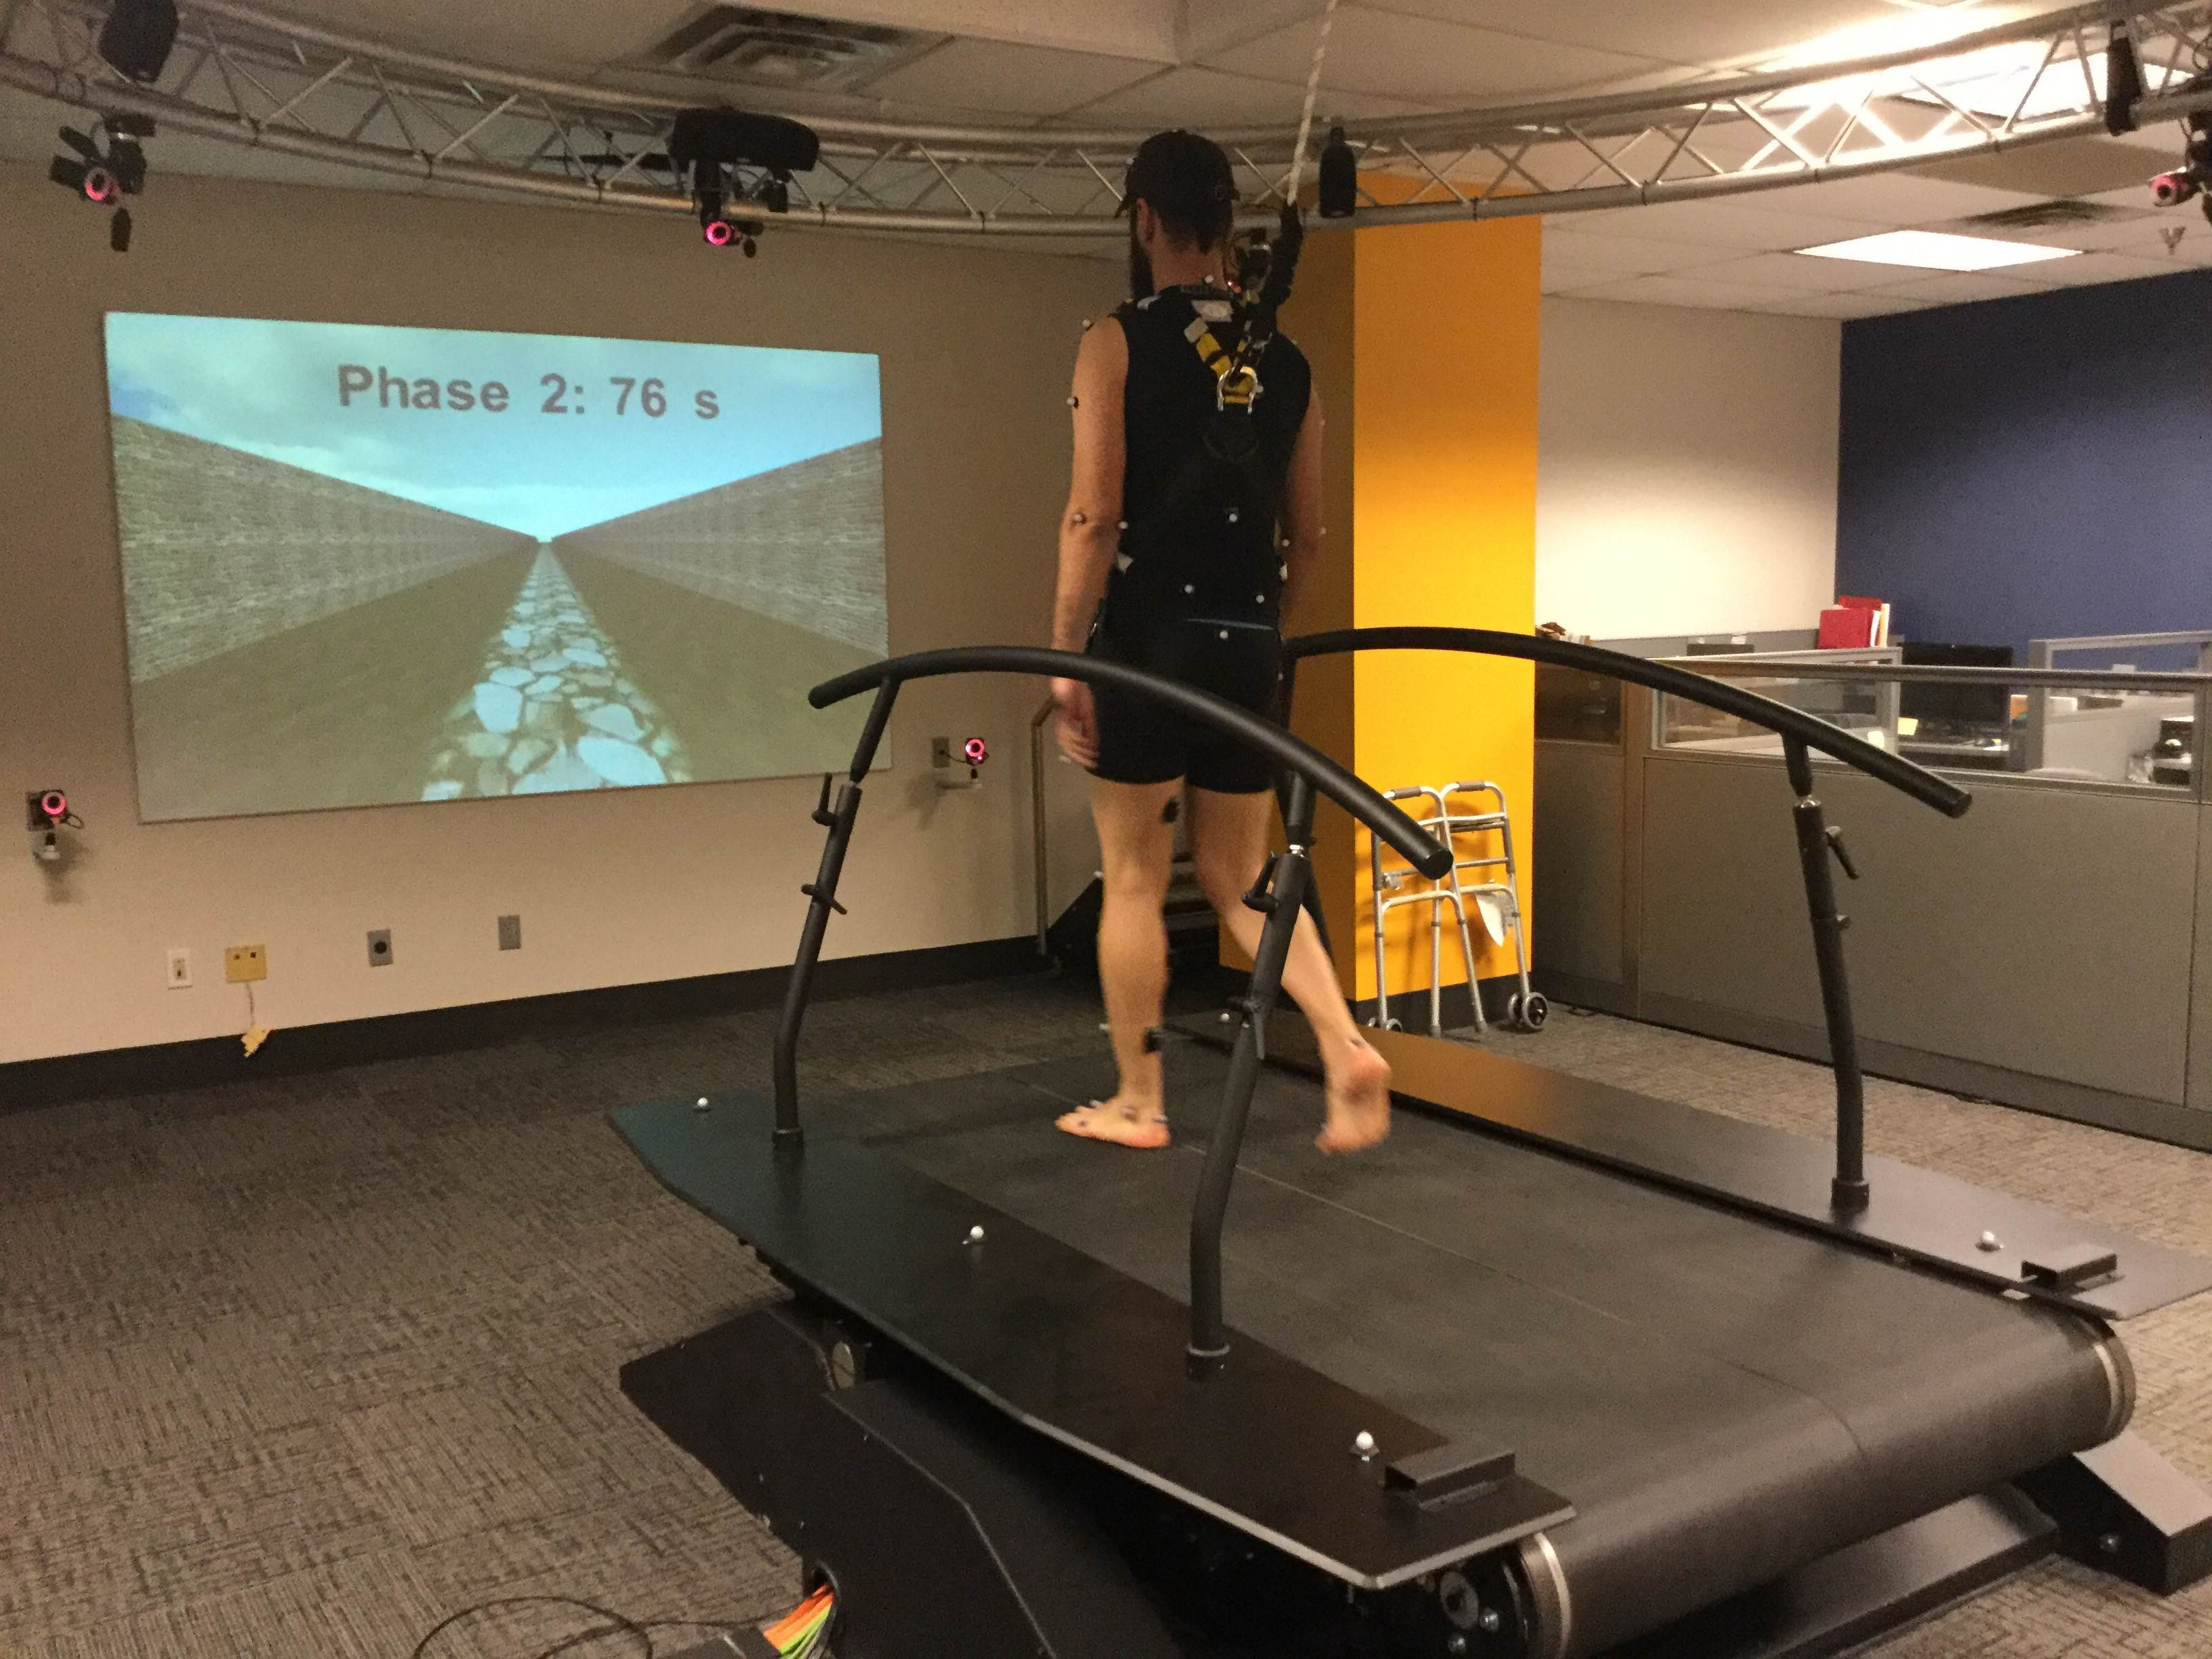 treadmill gait analysis